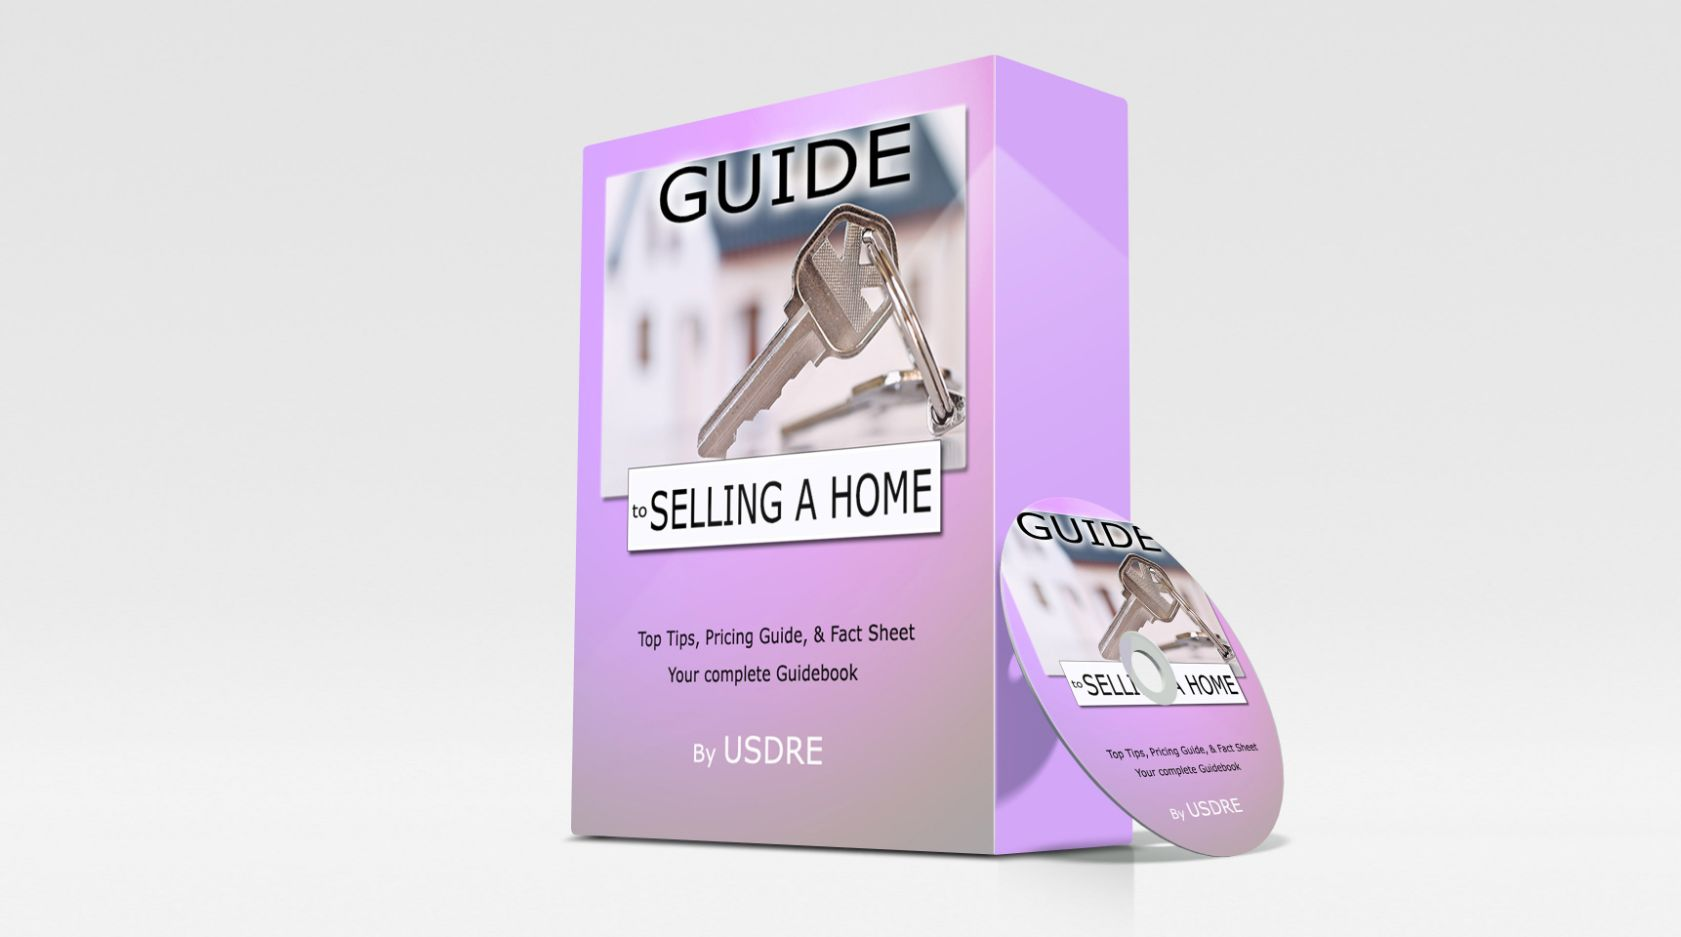 The US Directory of Real Estate Agents Launched Their Latest Guide Book to Help People Sell Their Home